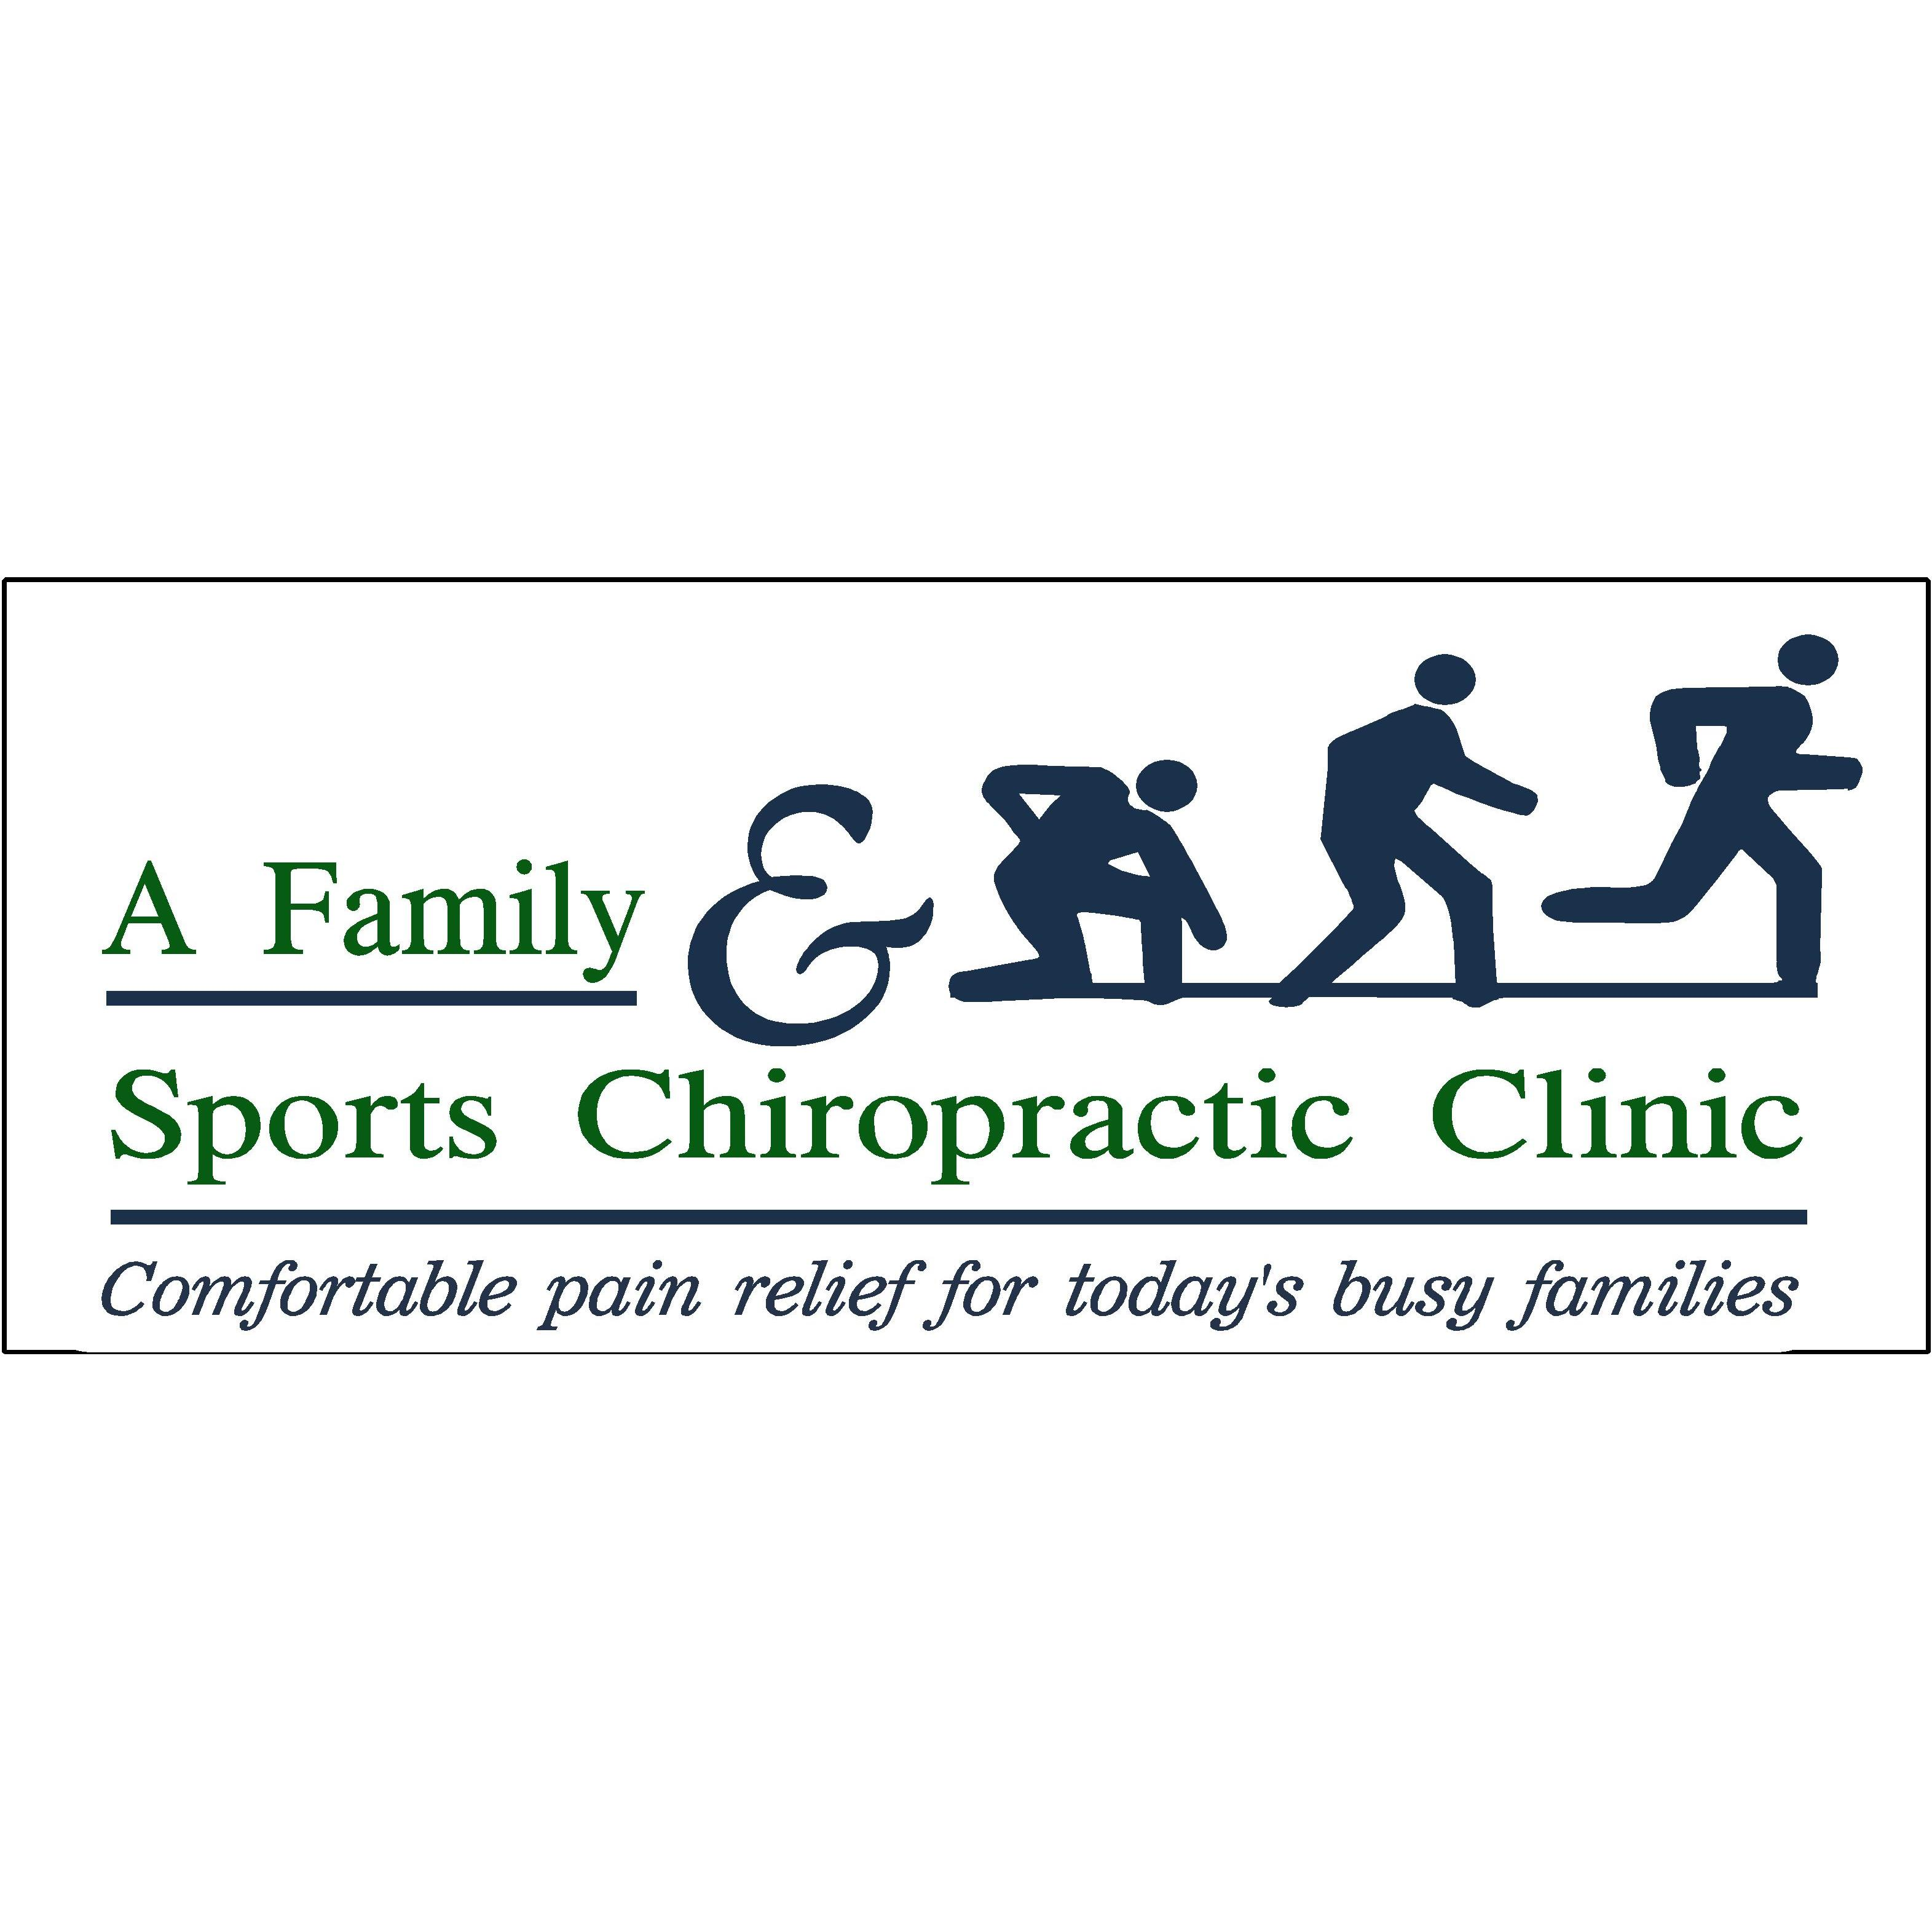 A Family & Sports Chiropractic Clinic